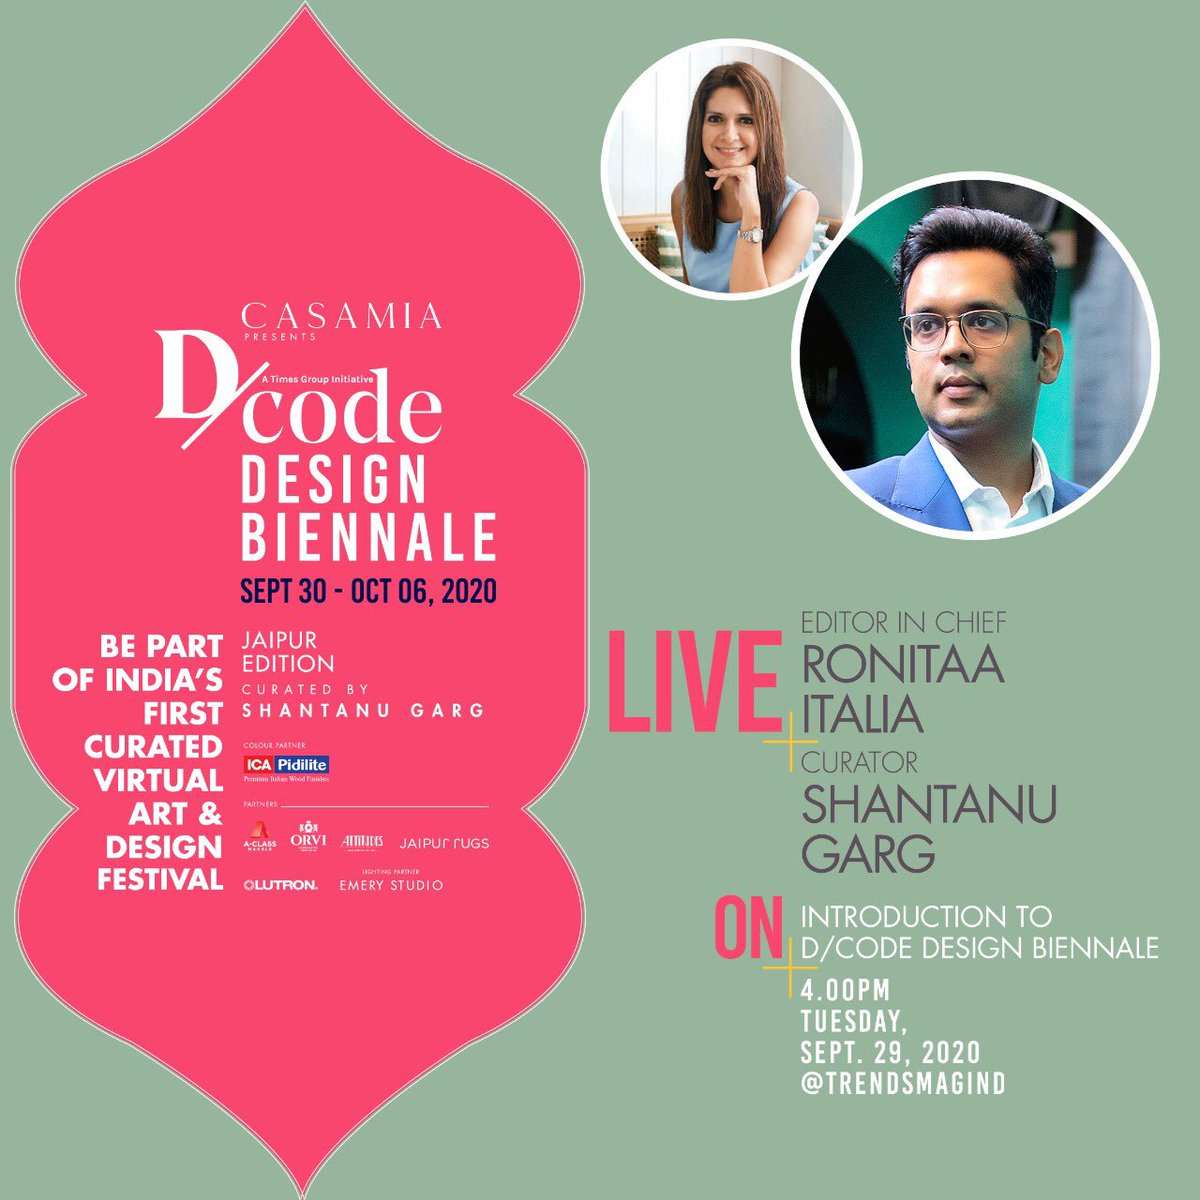 Giving us a glimpse into India's first virtual art & design festival are Editor-in-Chief Ronitaa Italia and curator Shantanu Garg in a fun engaging live chat.  Catch them live today at 4pm only at @trendsmagind Instagram https://t.co/K2u9KAsbFN